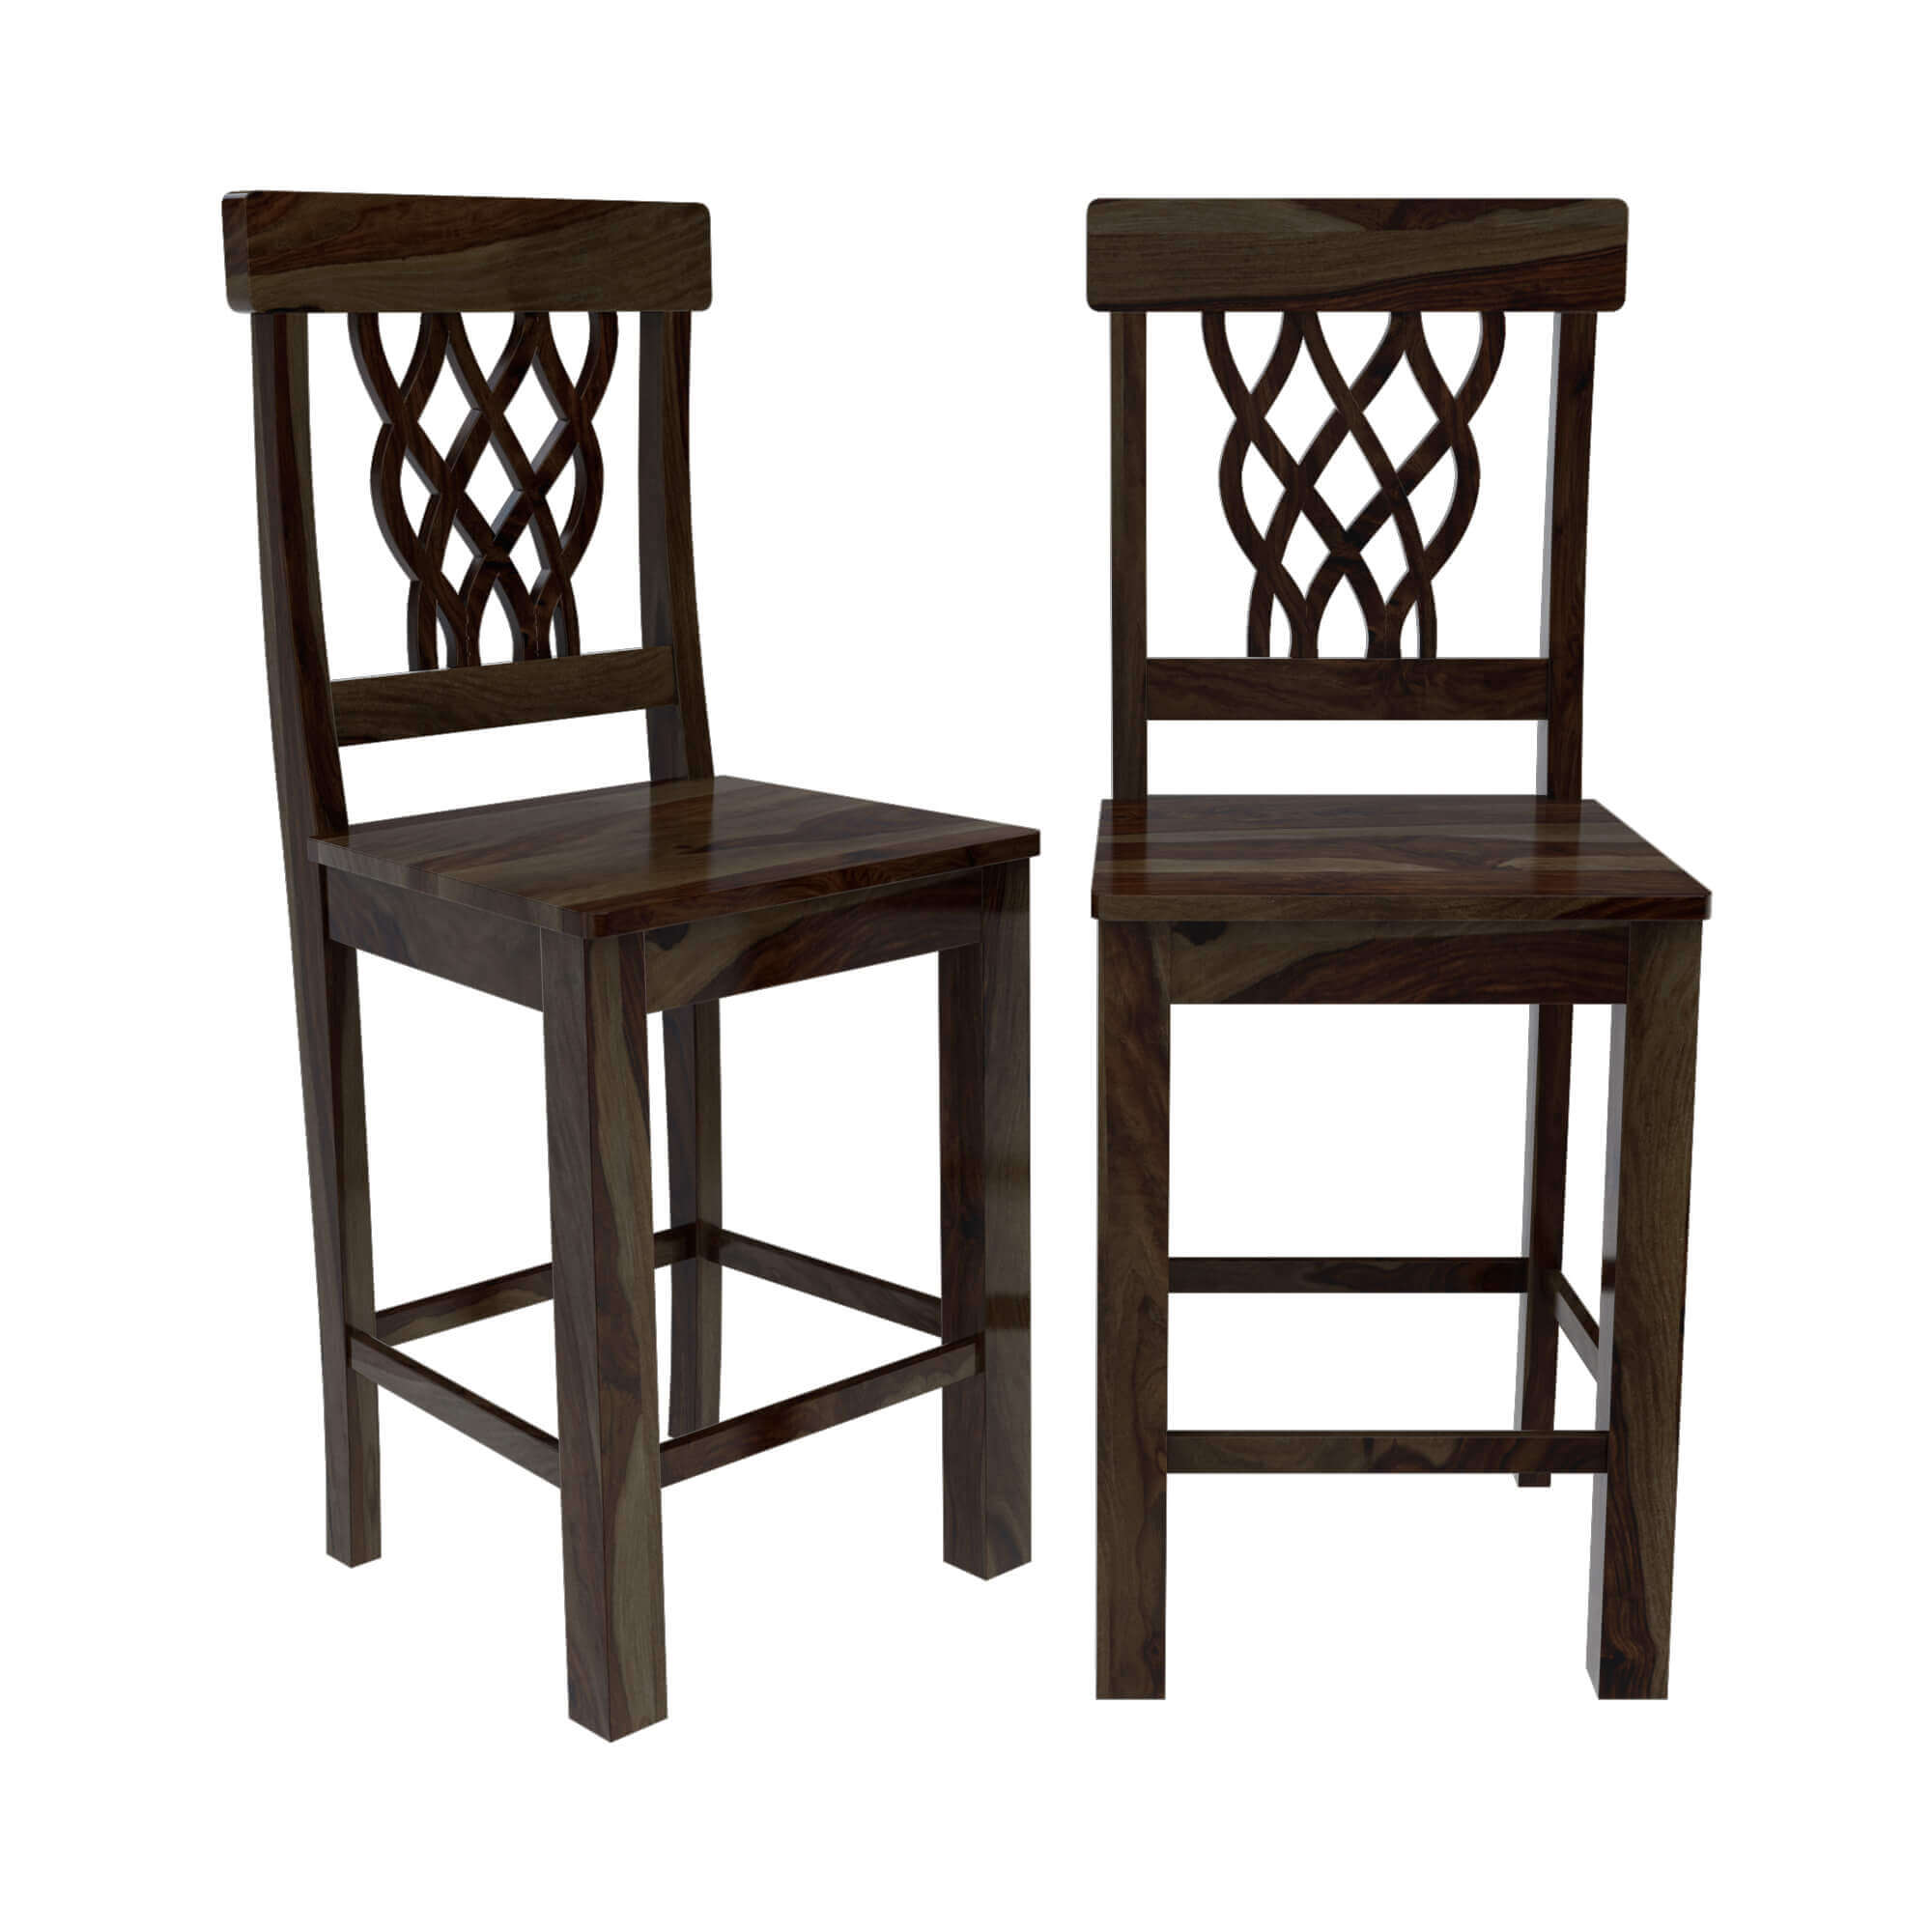 tall dining chairs weird kneeling chair portland pineapple back counter height